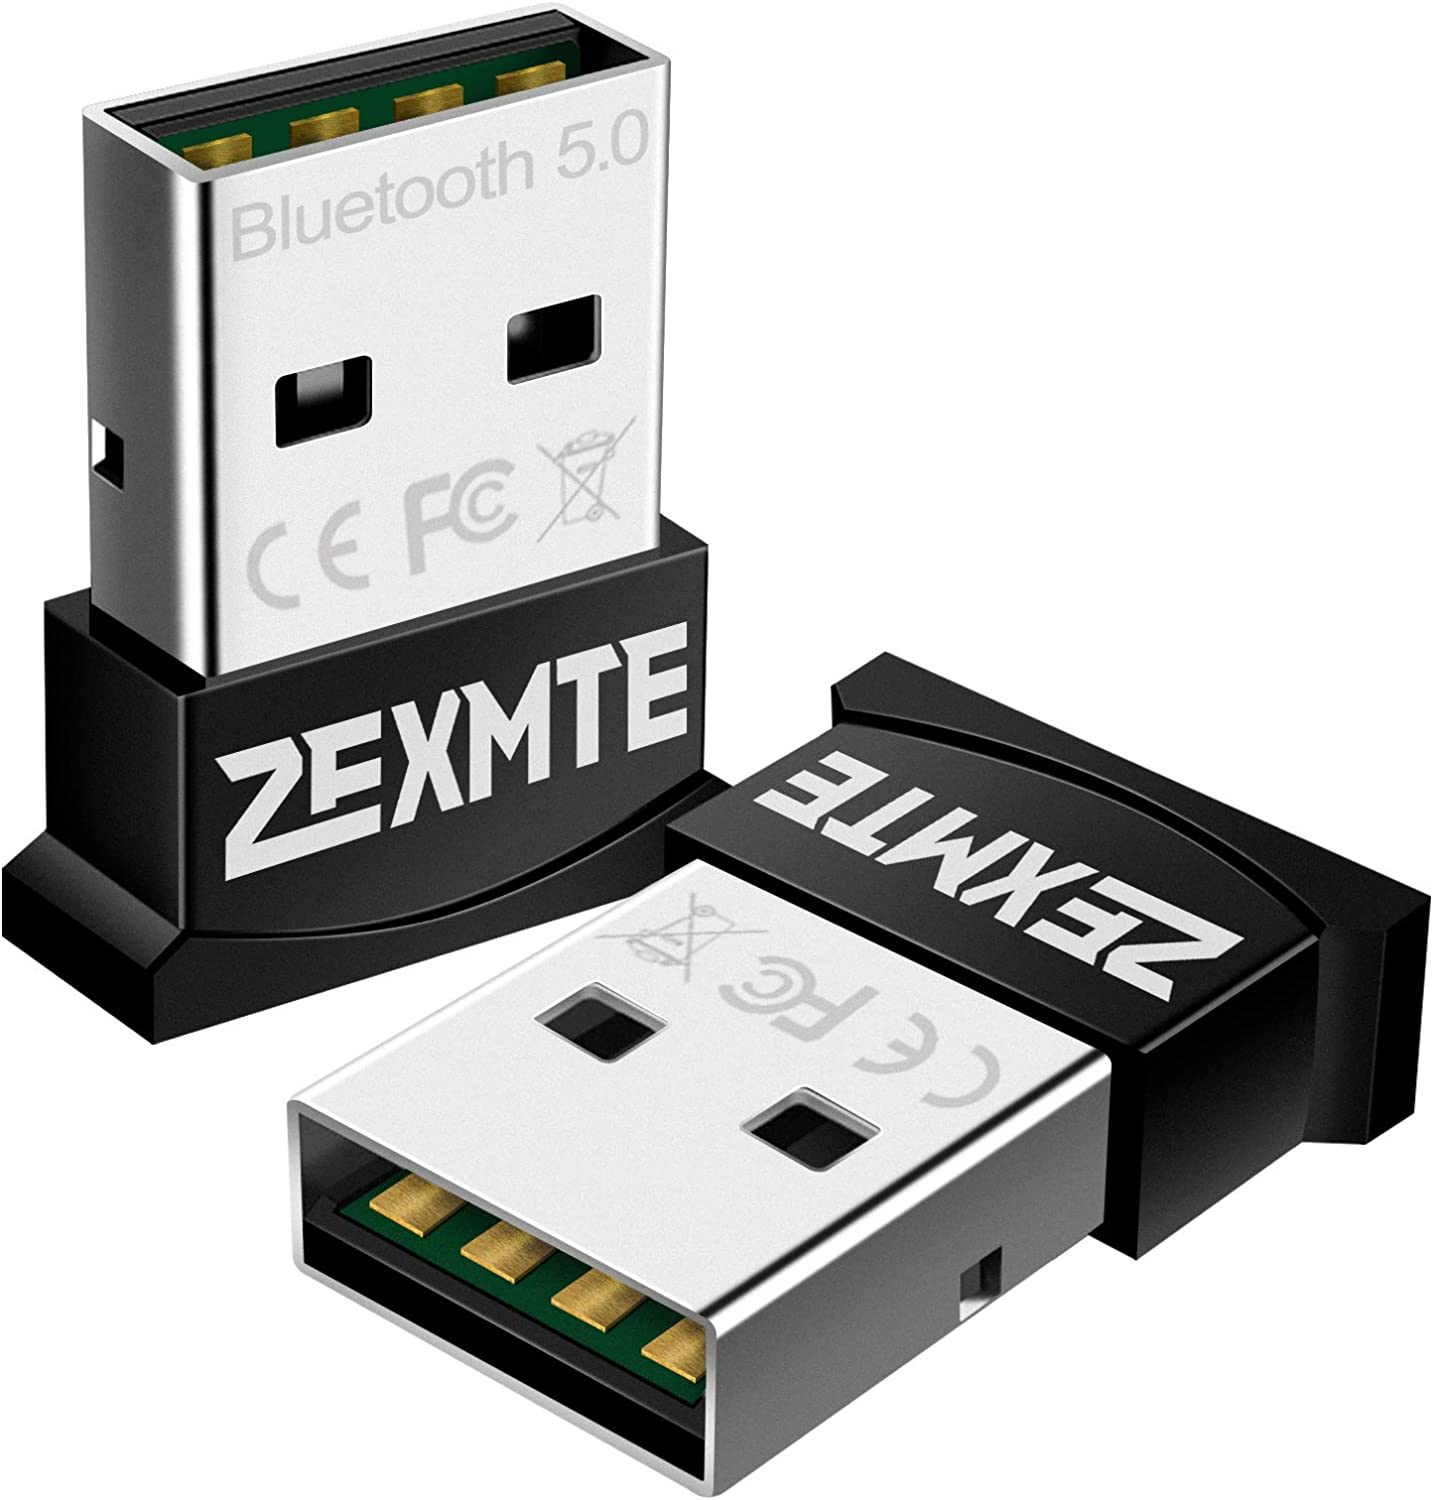 Amazon Com Zexmte Micro Usb Bluetooth Adapter For Pc Bluetooth 5 0 Usb Dongle Adapter Compatible With Pc Desktop And Computer With Windows 10 8 1 8 7 Vista Xp Computers Accessories